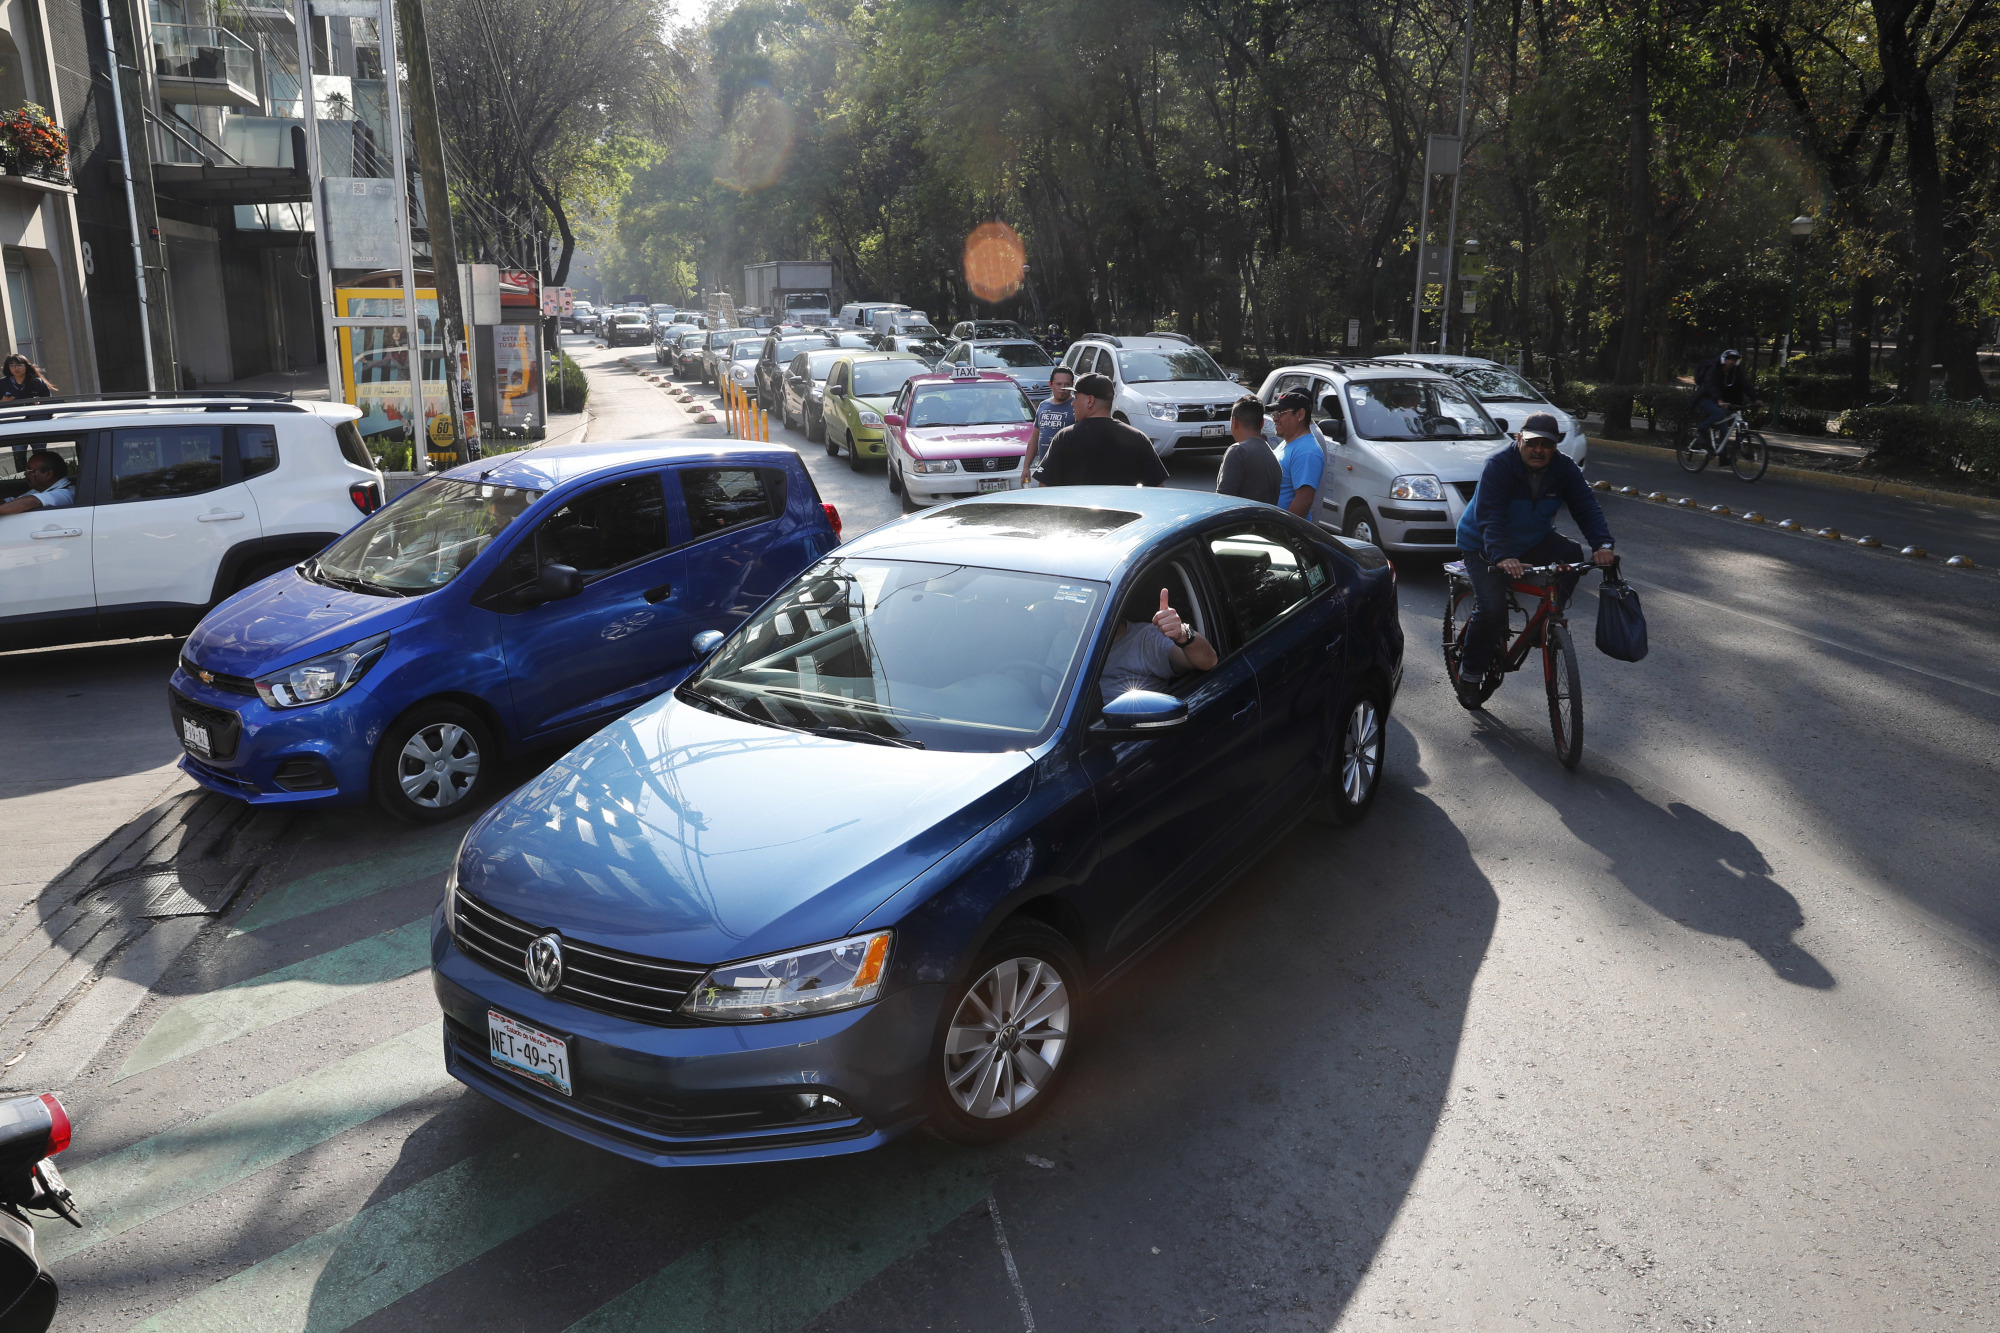 Vehicles stand in line to fill up their fuel tanks at a gas station in Mexico, City Wednesday. A fuel scarcity arose after President Andres Manuel Lopez Obrador decided to close government pipelines riddled with illegal fuel taps drilled by thieves, and instead deliver gas and diesel by tanker trucks. | AP